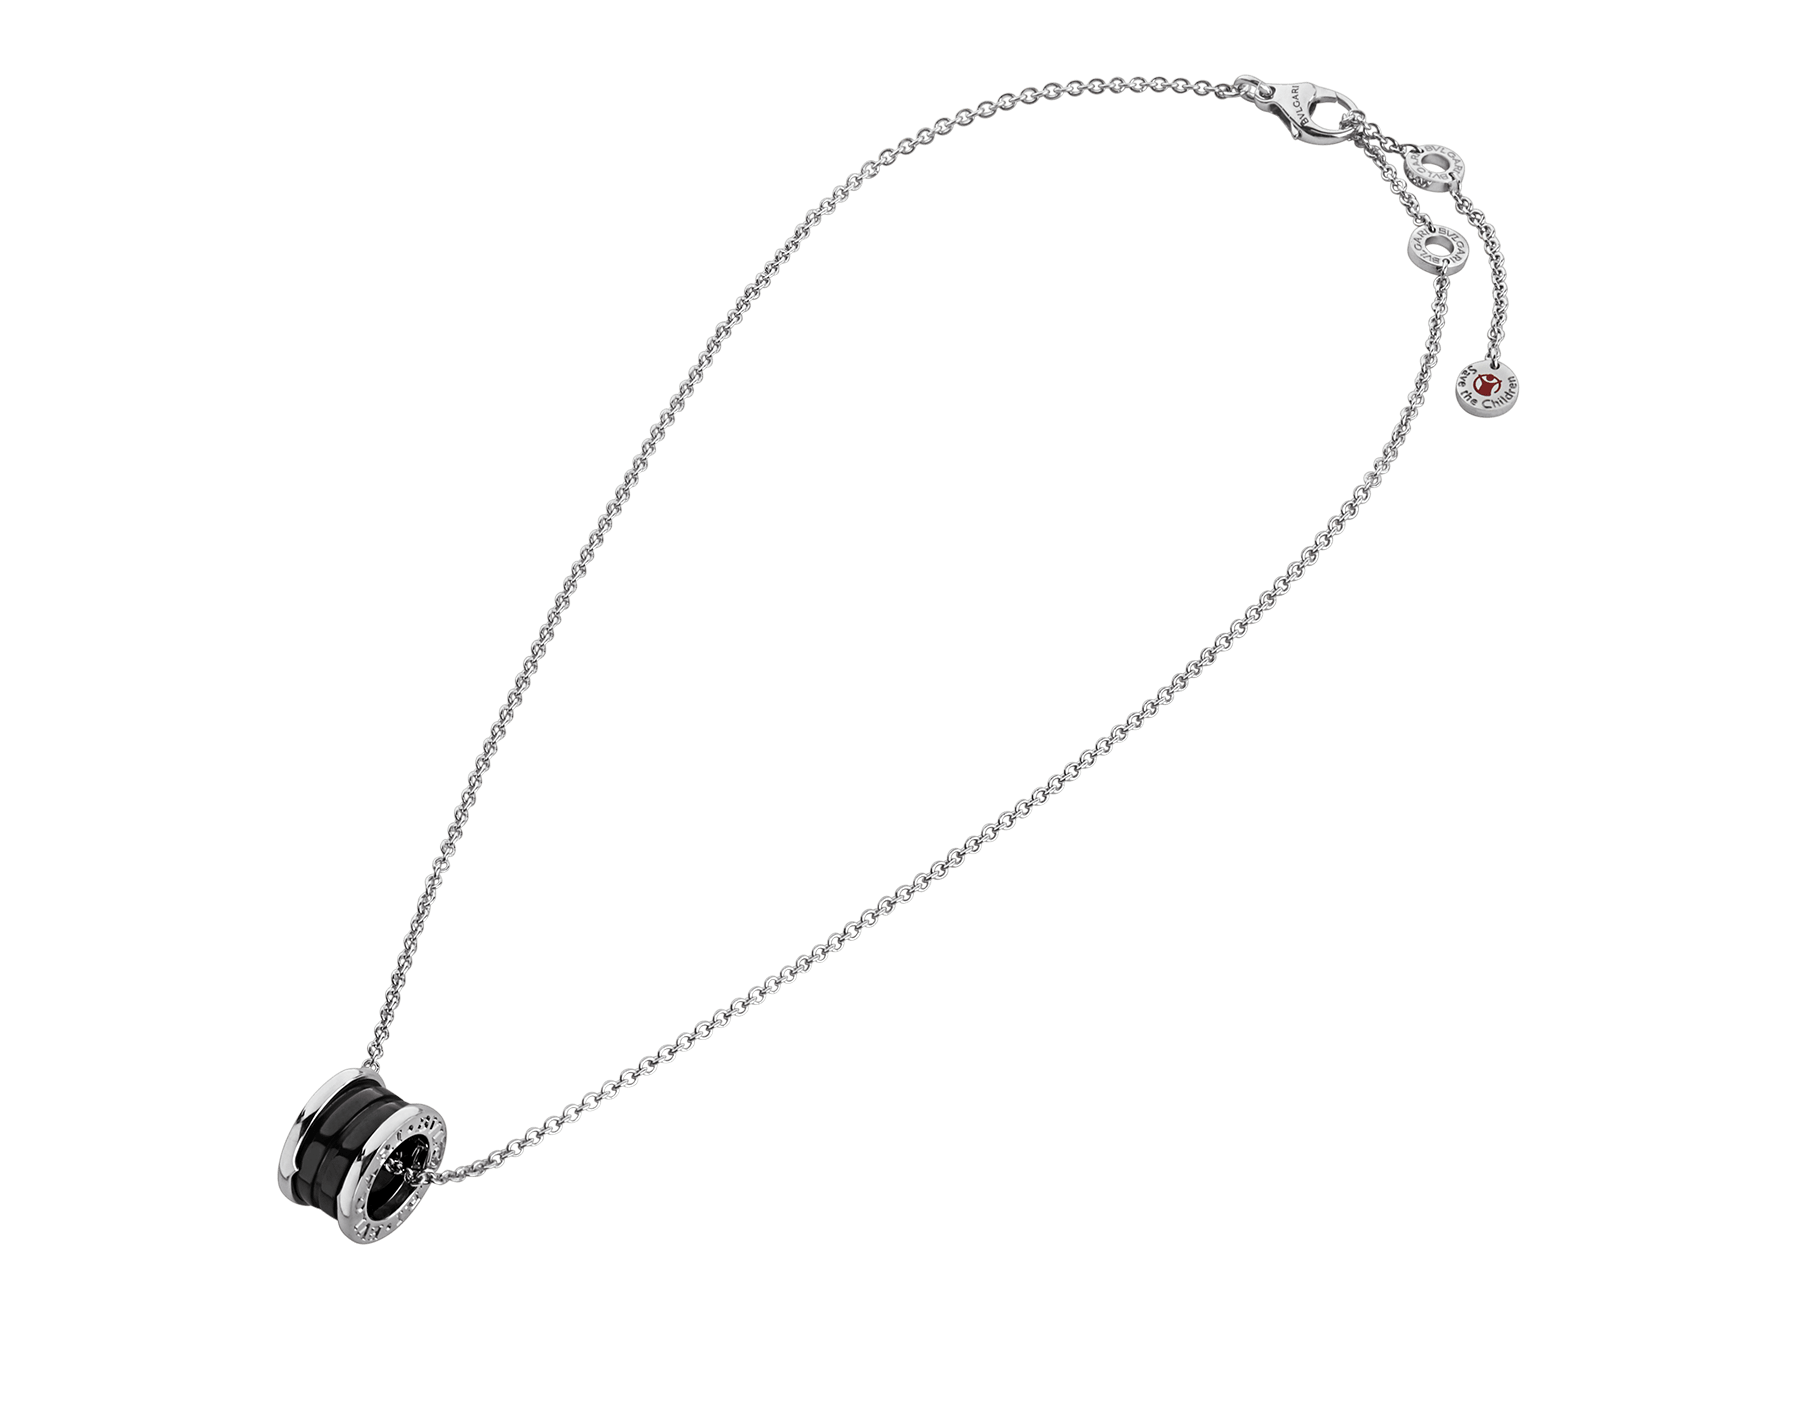 Save the Children necklace with sterling silver and black ceramic pendant, and sterling silver chain 349634 image 2